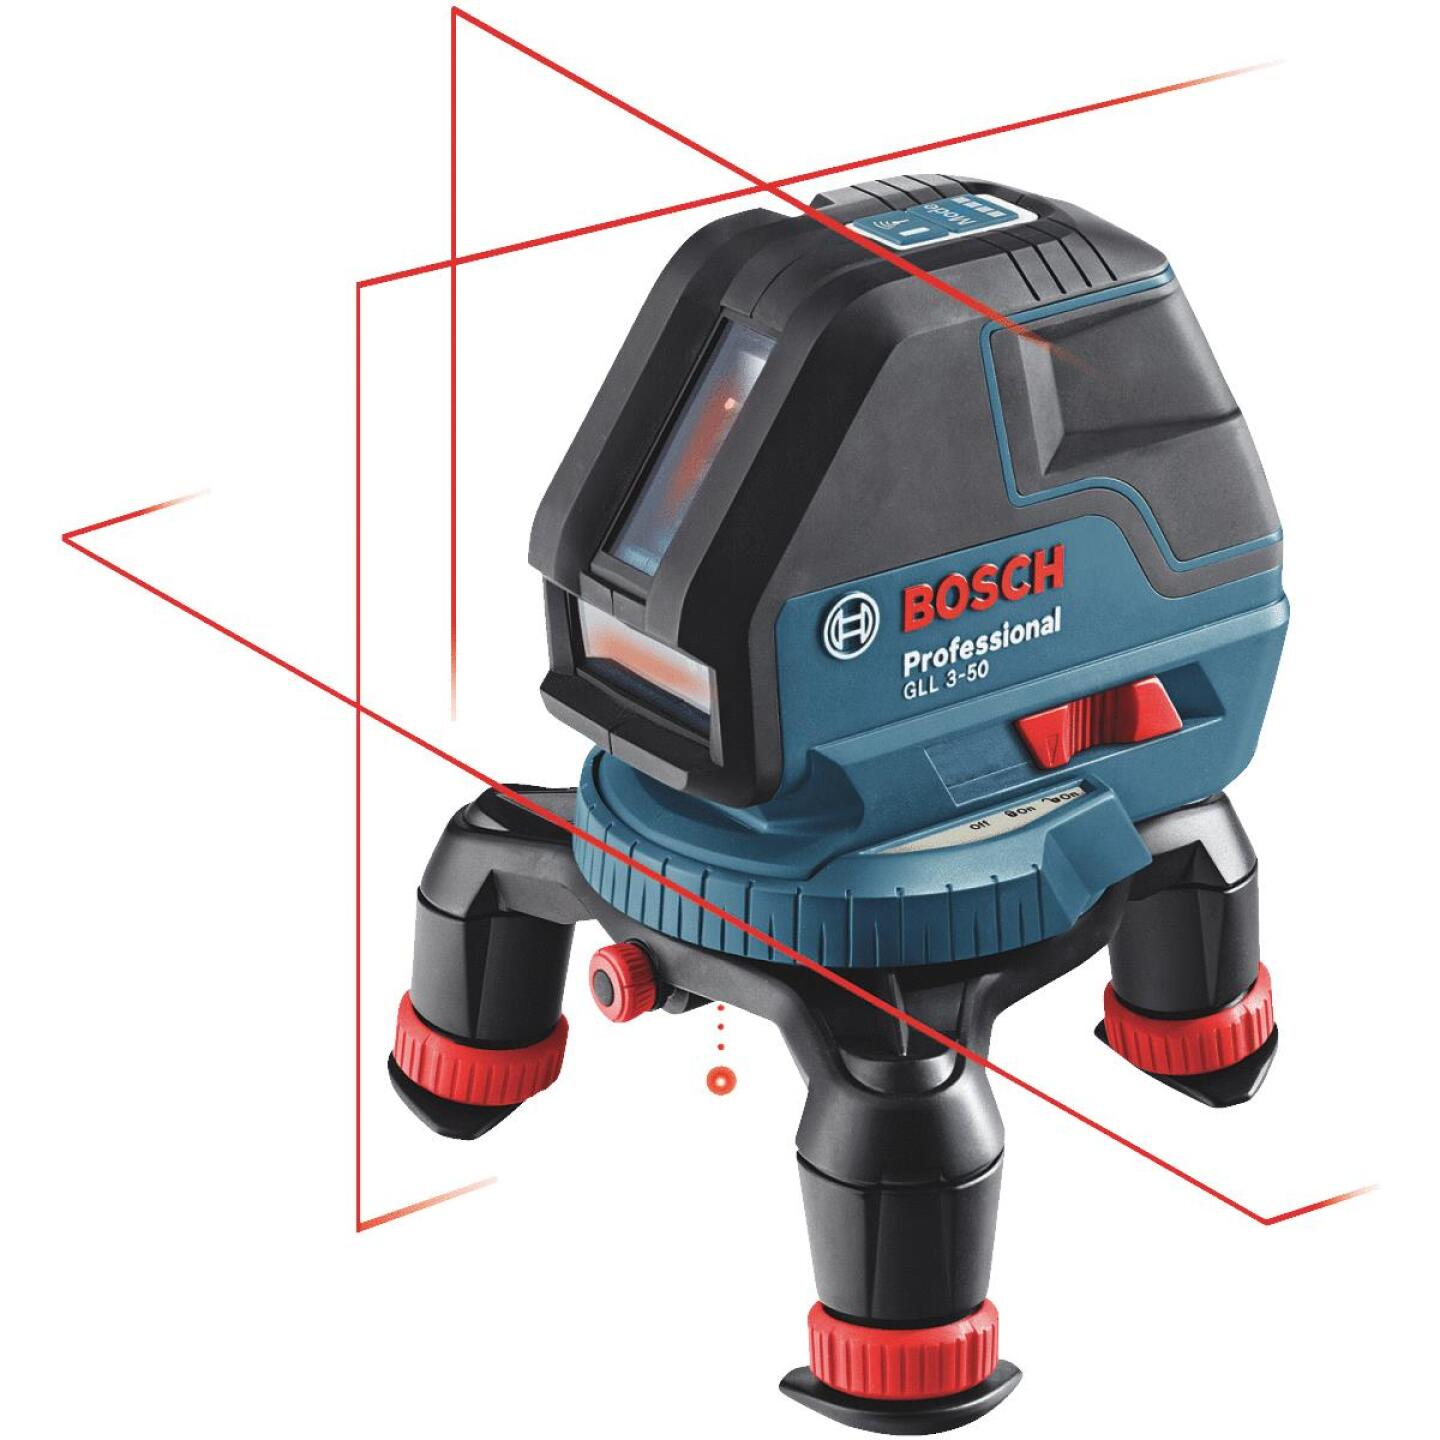 Bosch 165 Ft. Self-Leveling 360 Degree 3-Plane and Alignment Line Laser Level with Layout Beam Image 1